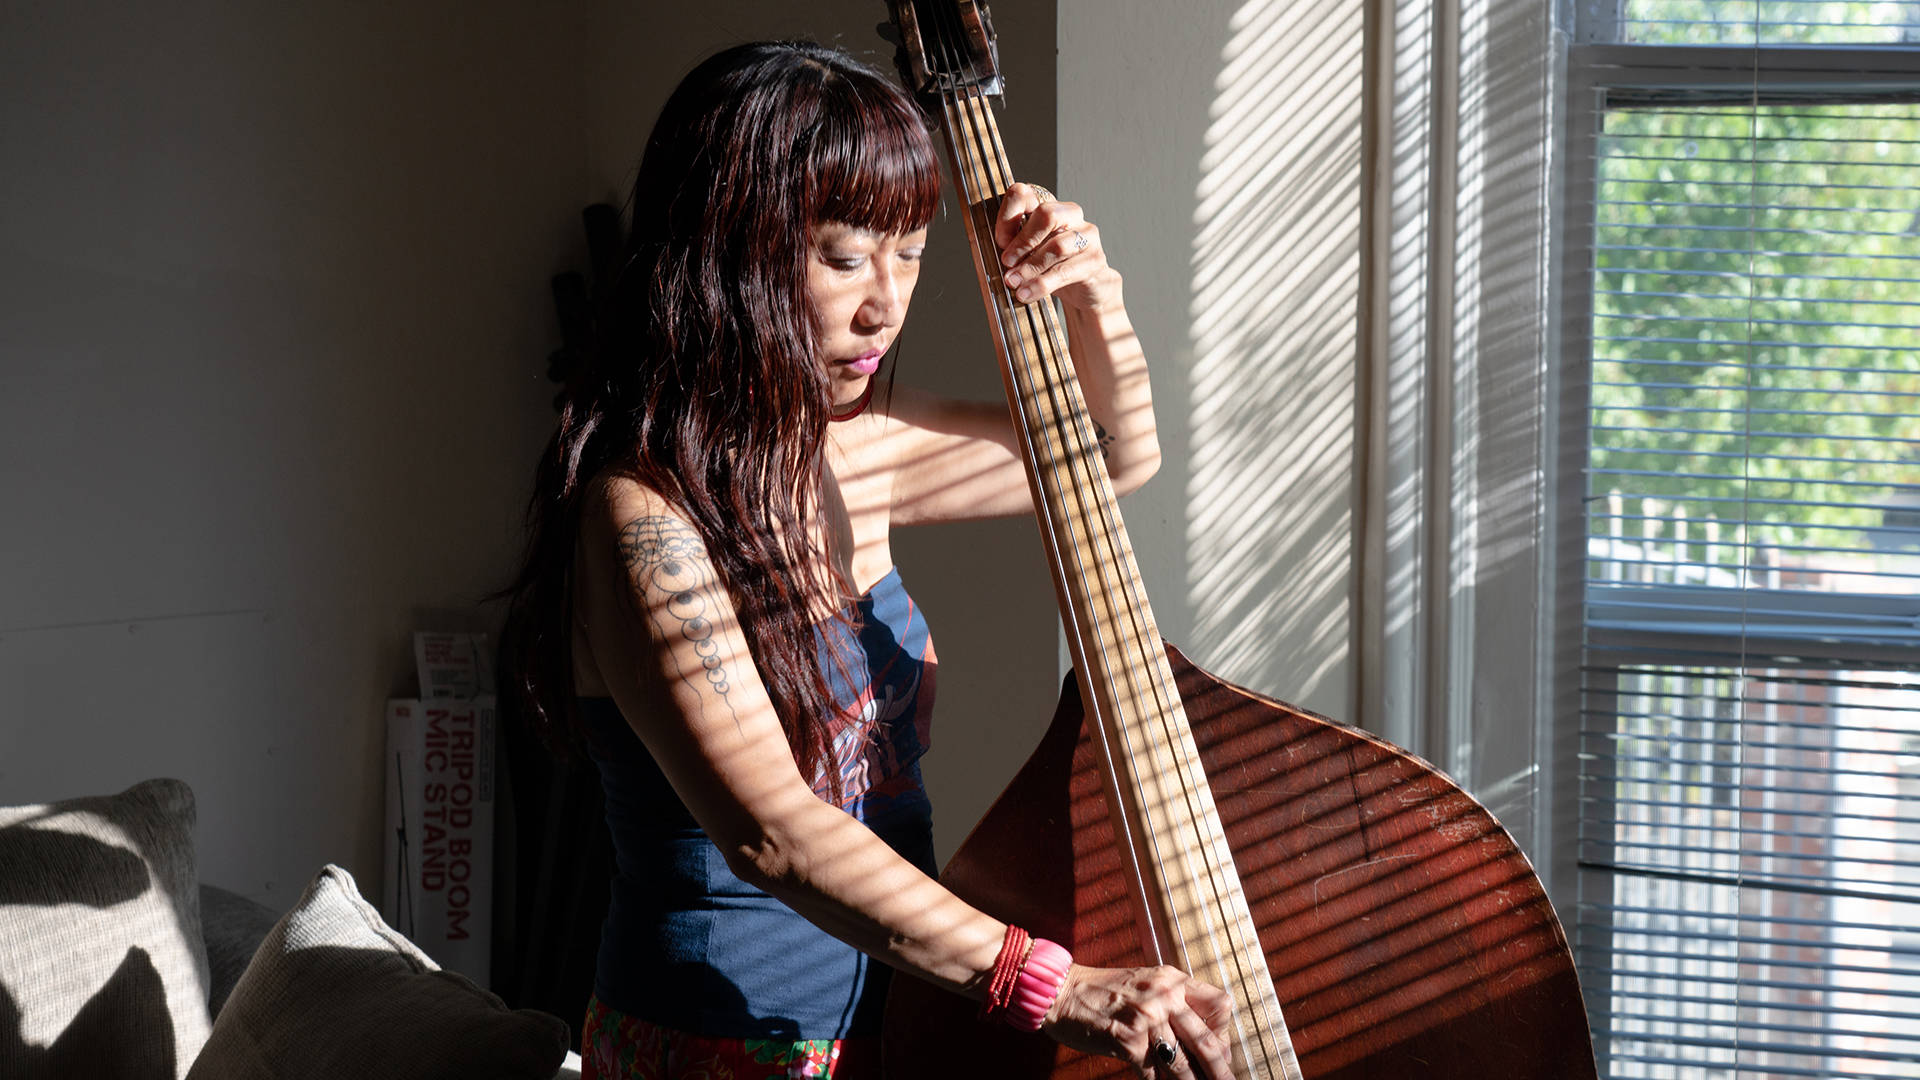 Active in the Bay Area's jazz scene since 1999, Caroline Chung became bandleader to advocate for fair pay for herself and her players. Graham Holoch